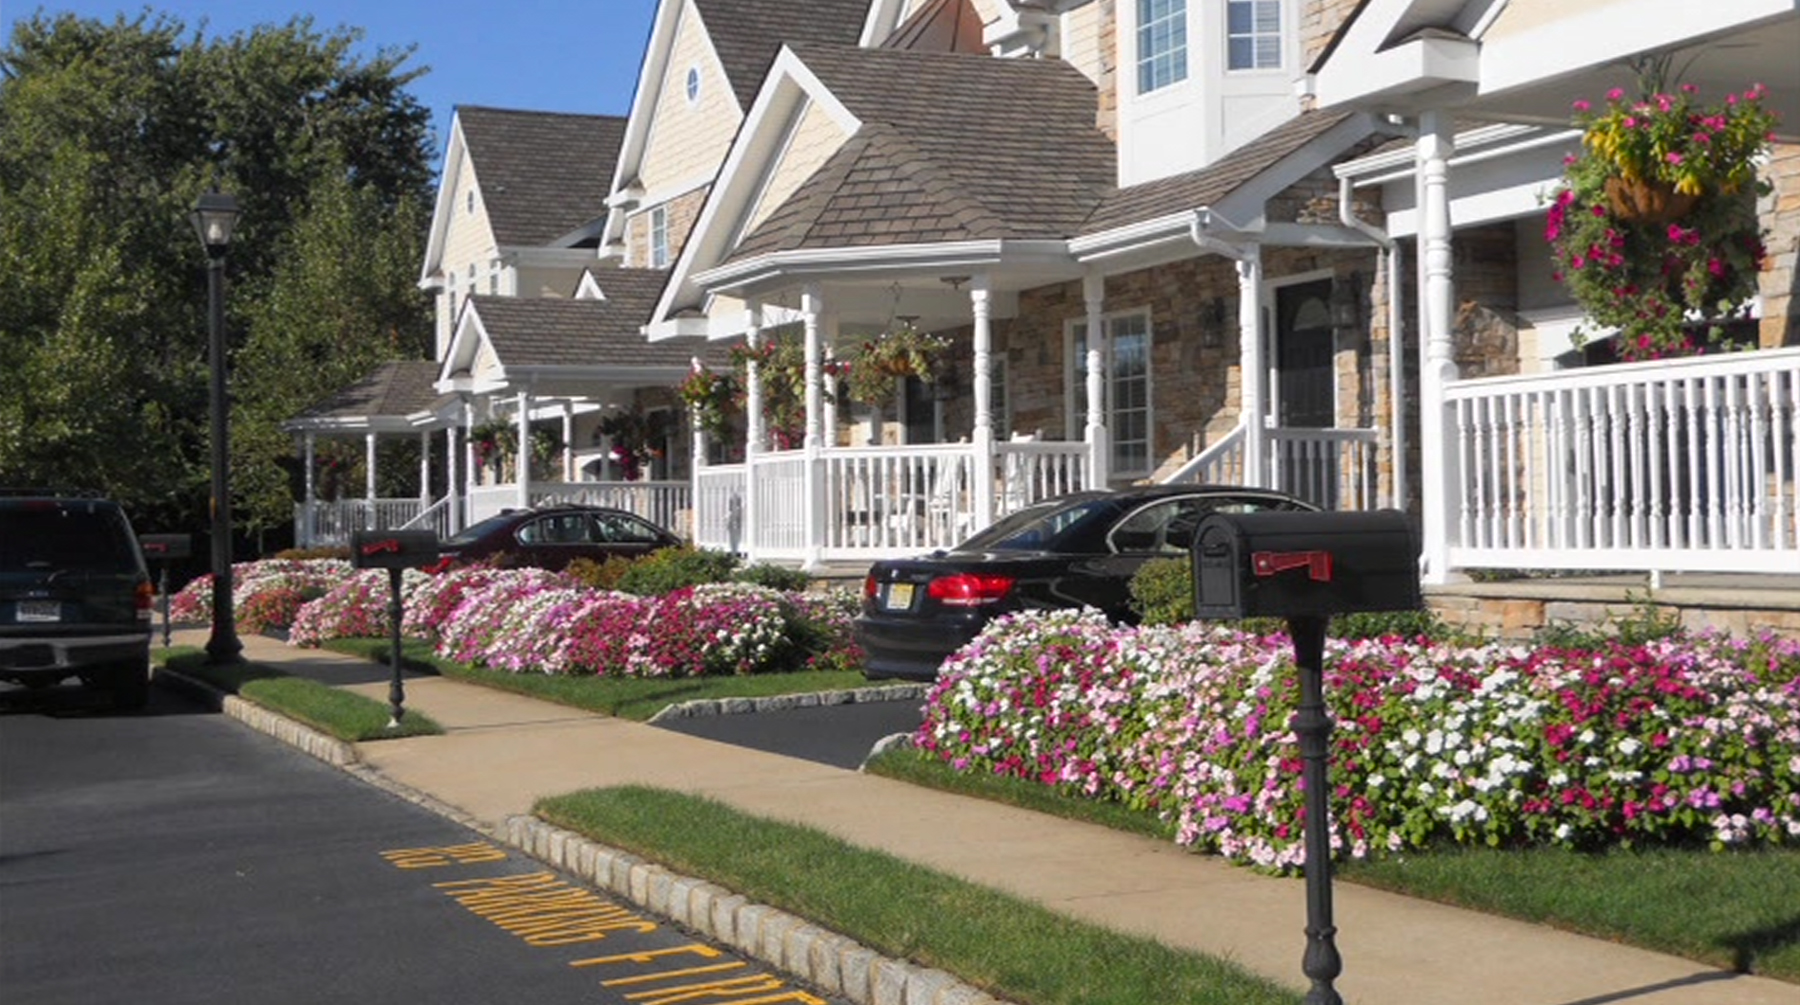 Riverview Villas-Long Branch NJ.jpg